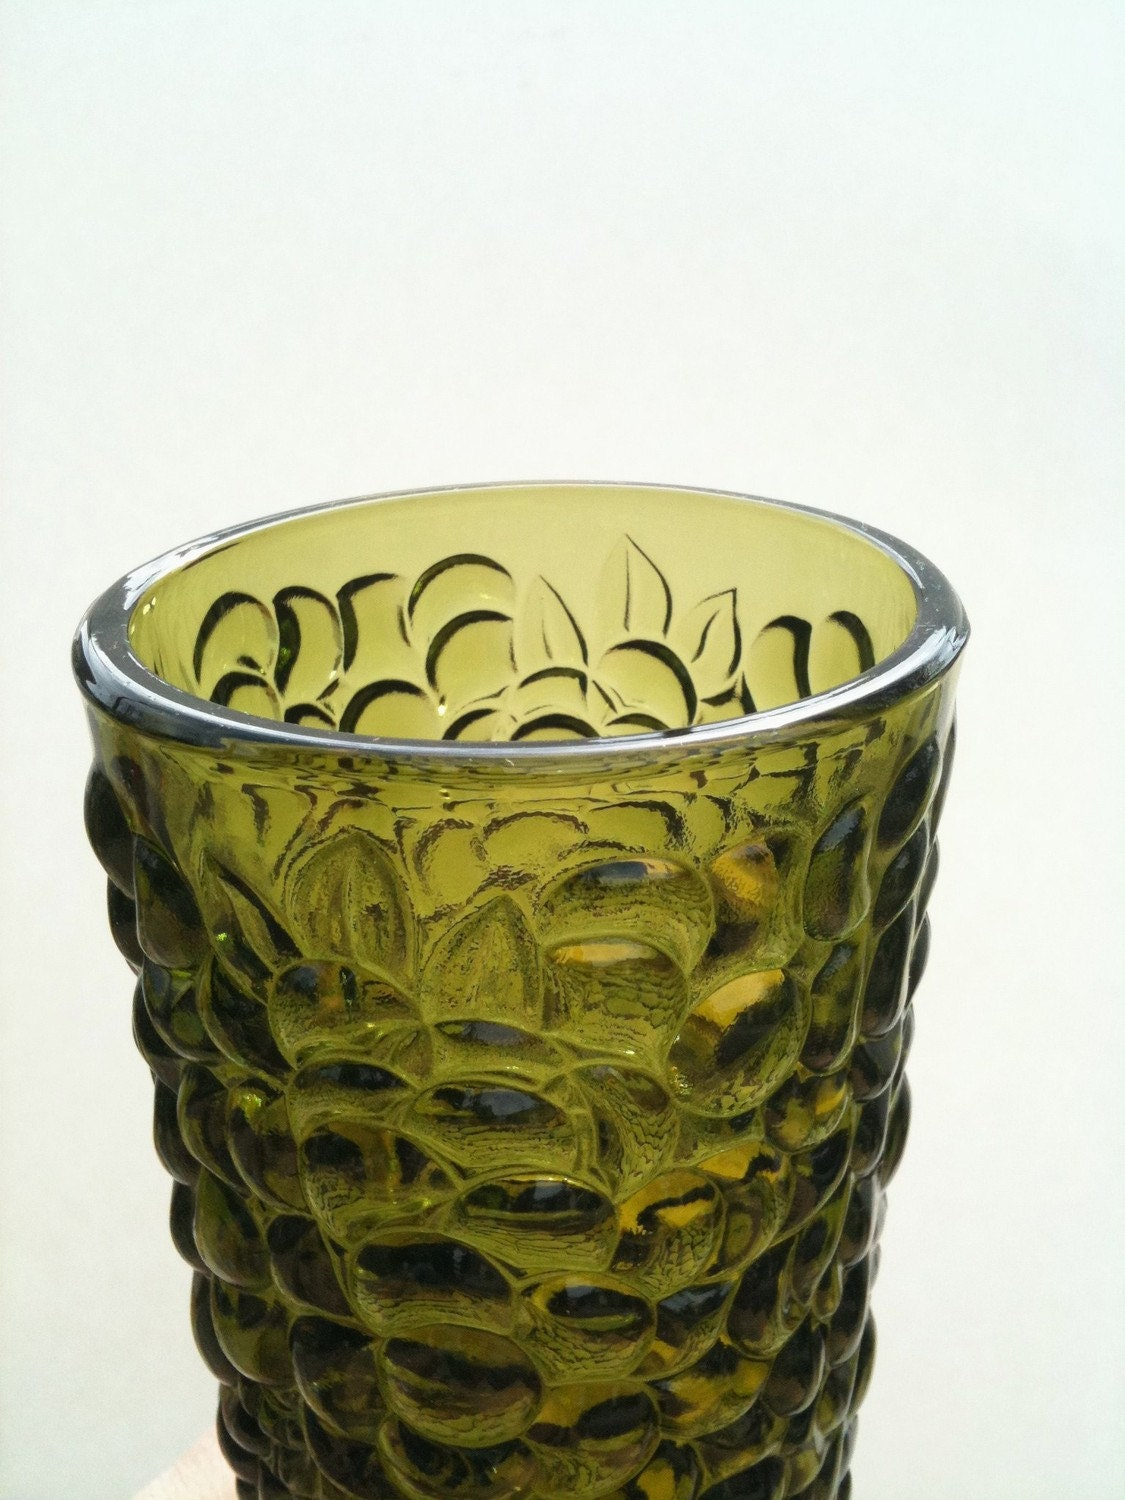 Vintage green vases in Vases - Compare Prices, Read Reviews and